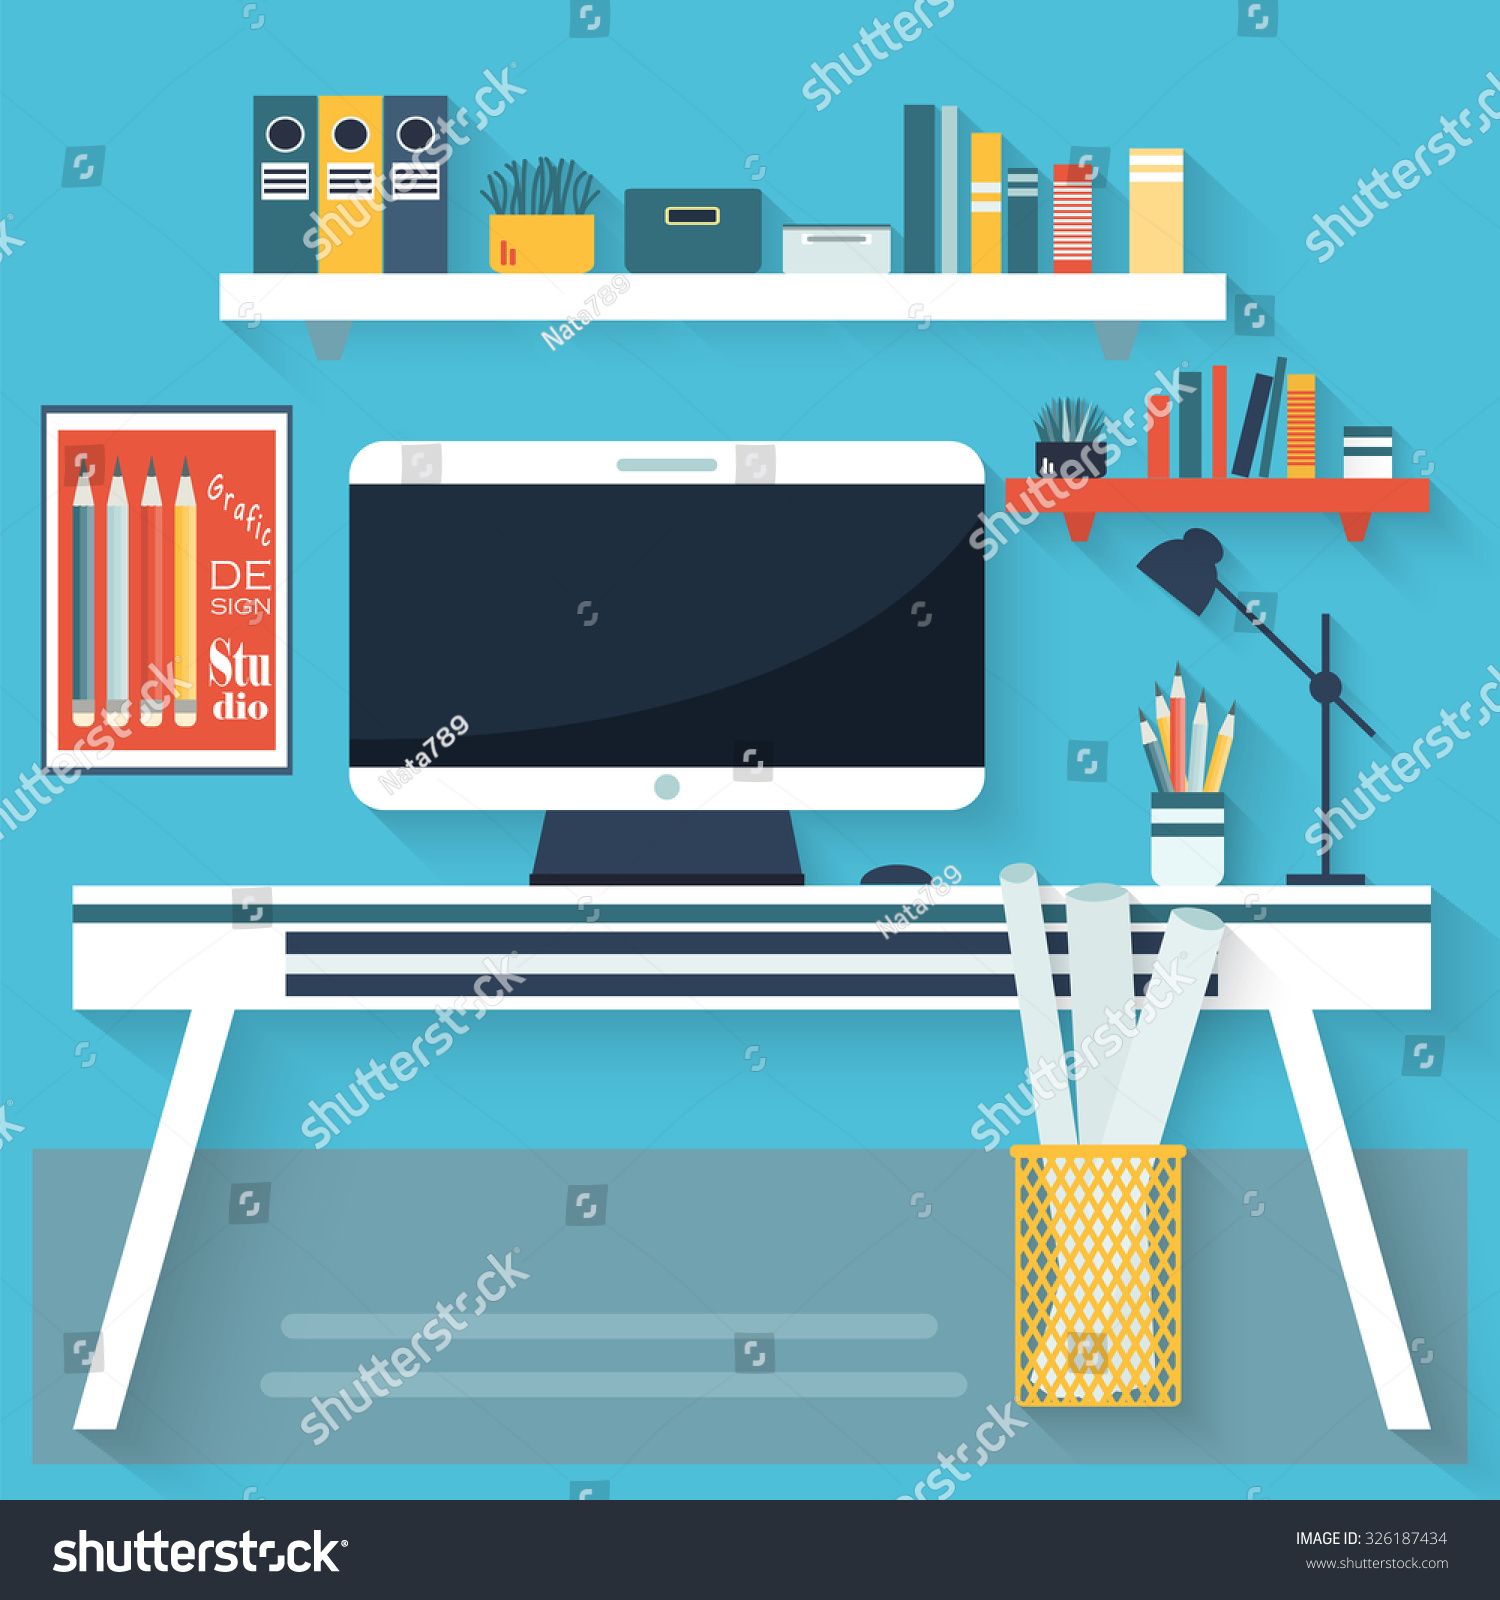 Shutterstock Vector Line Living Room